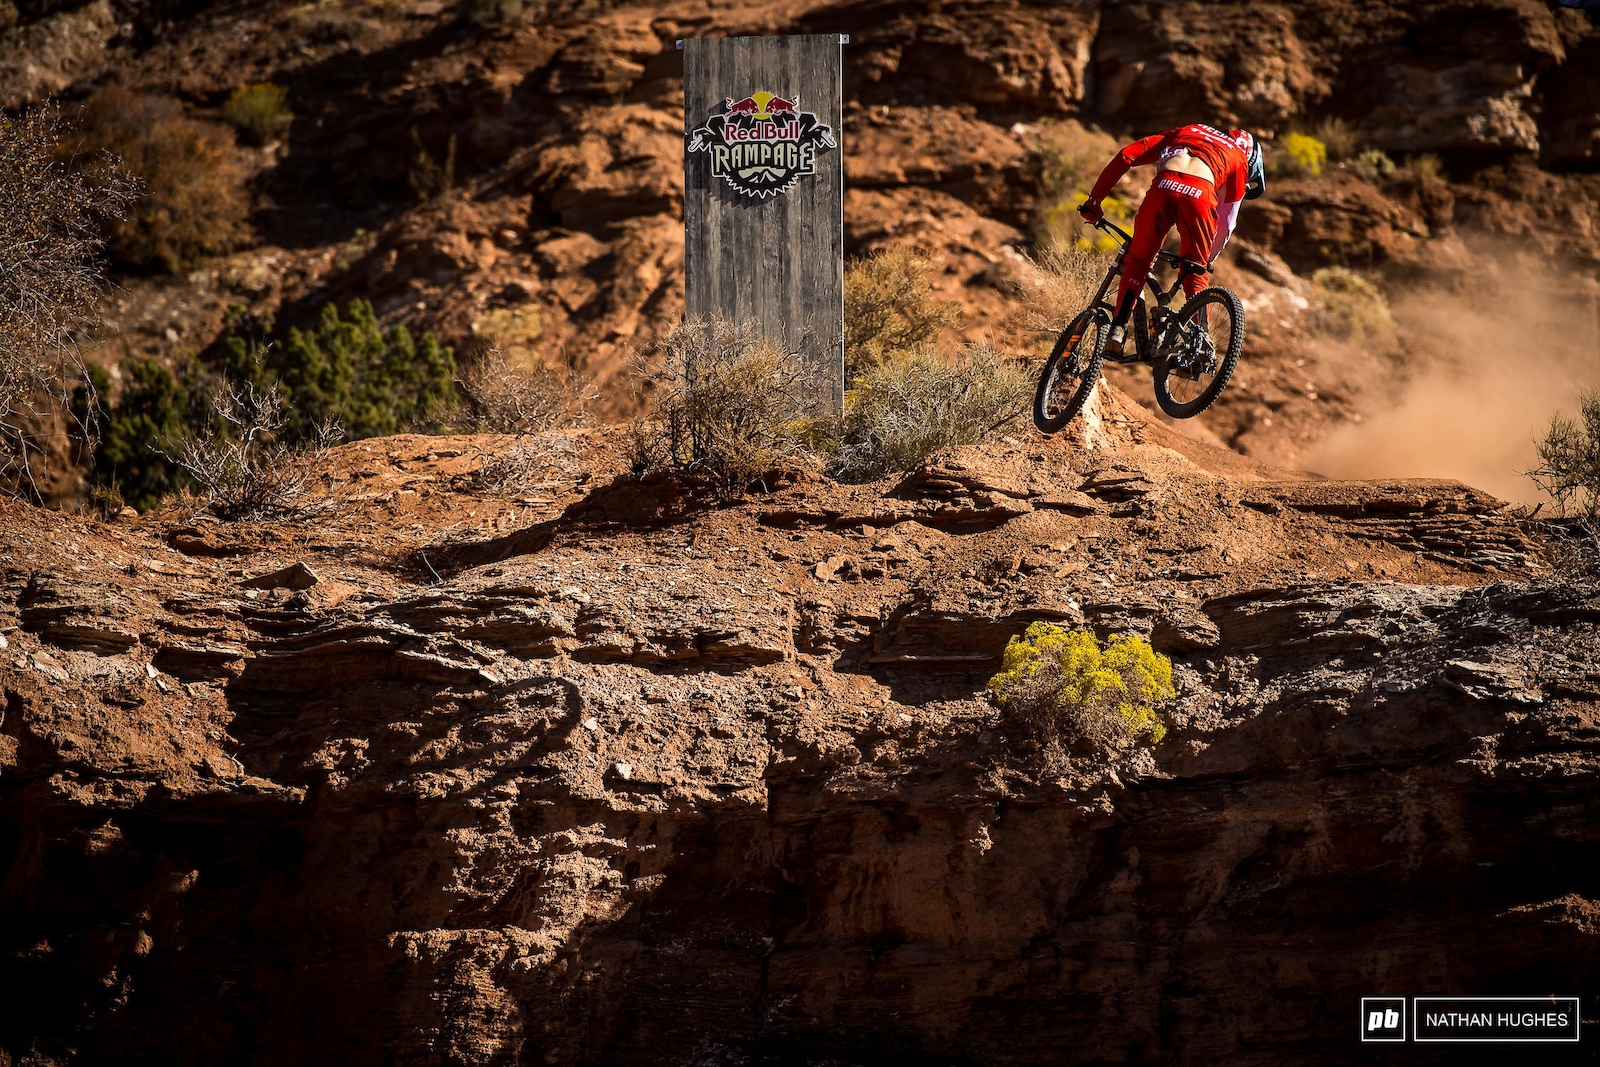 Rheeder spinning down into the finish area in front of the huge Rampage crowds.